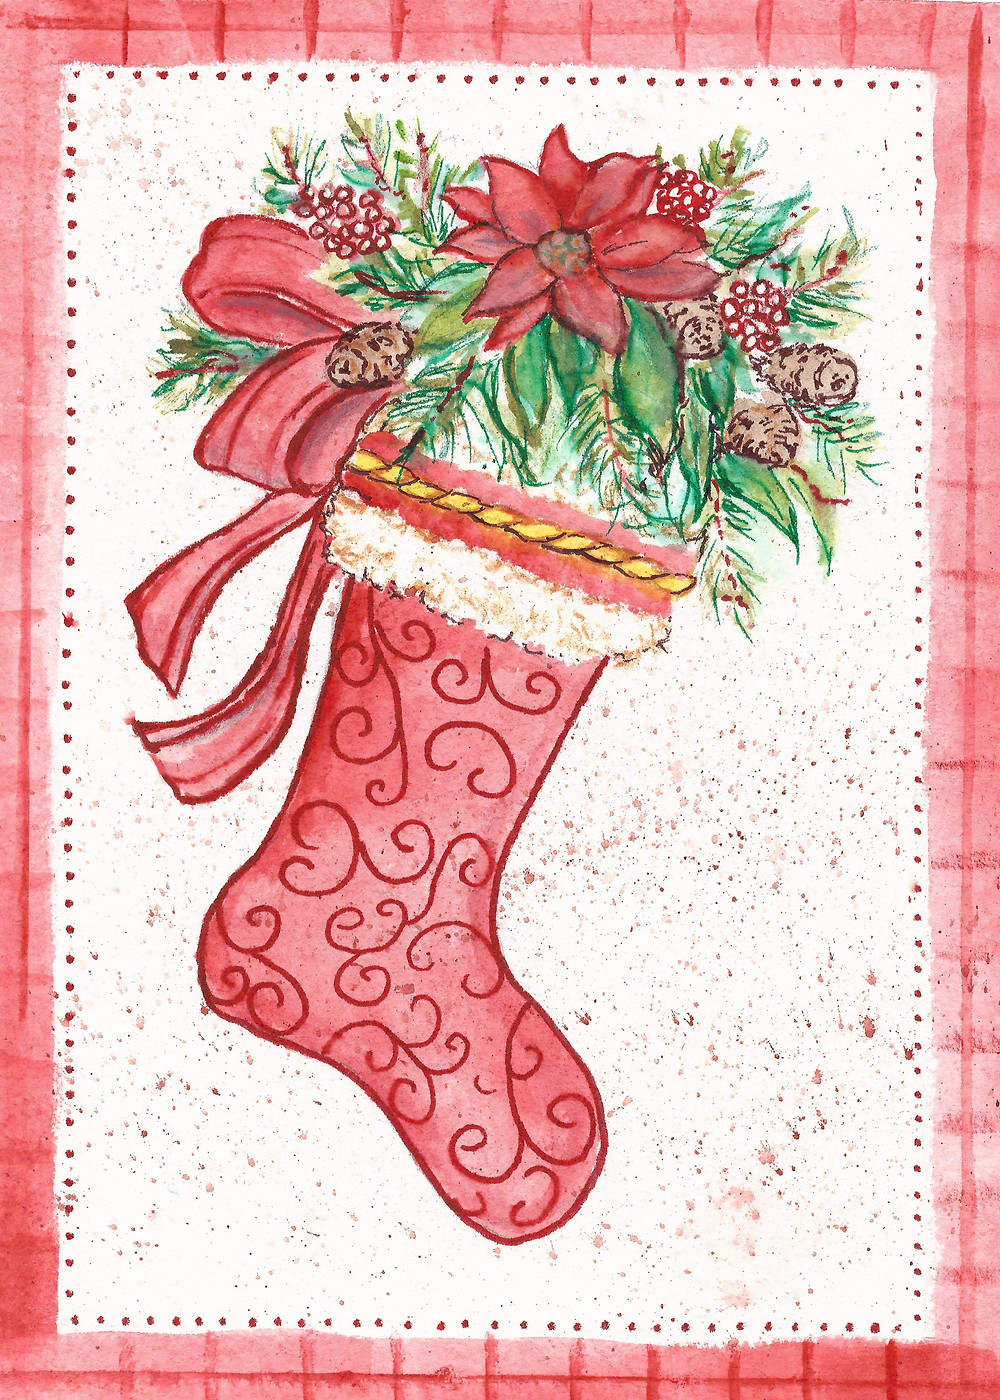 stocking watercolor christmas poinsettia illustration